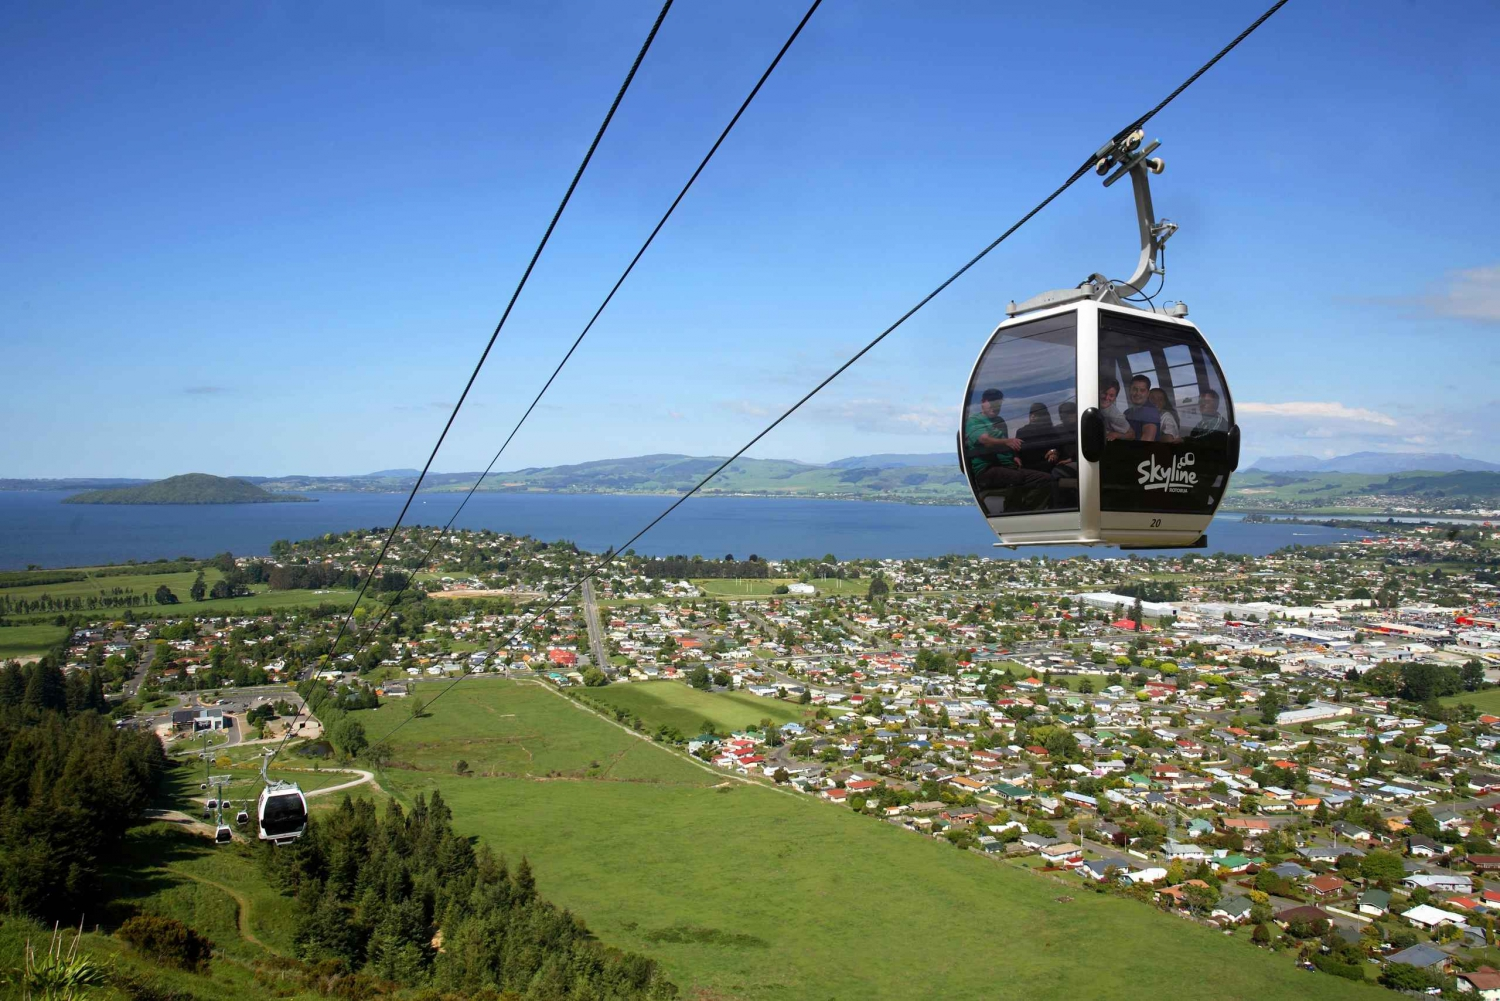 Waitomo & Rotorua Day Trip from Auckland with Gondola Ride